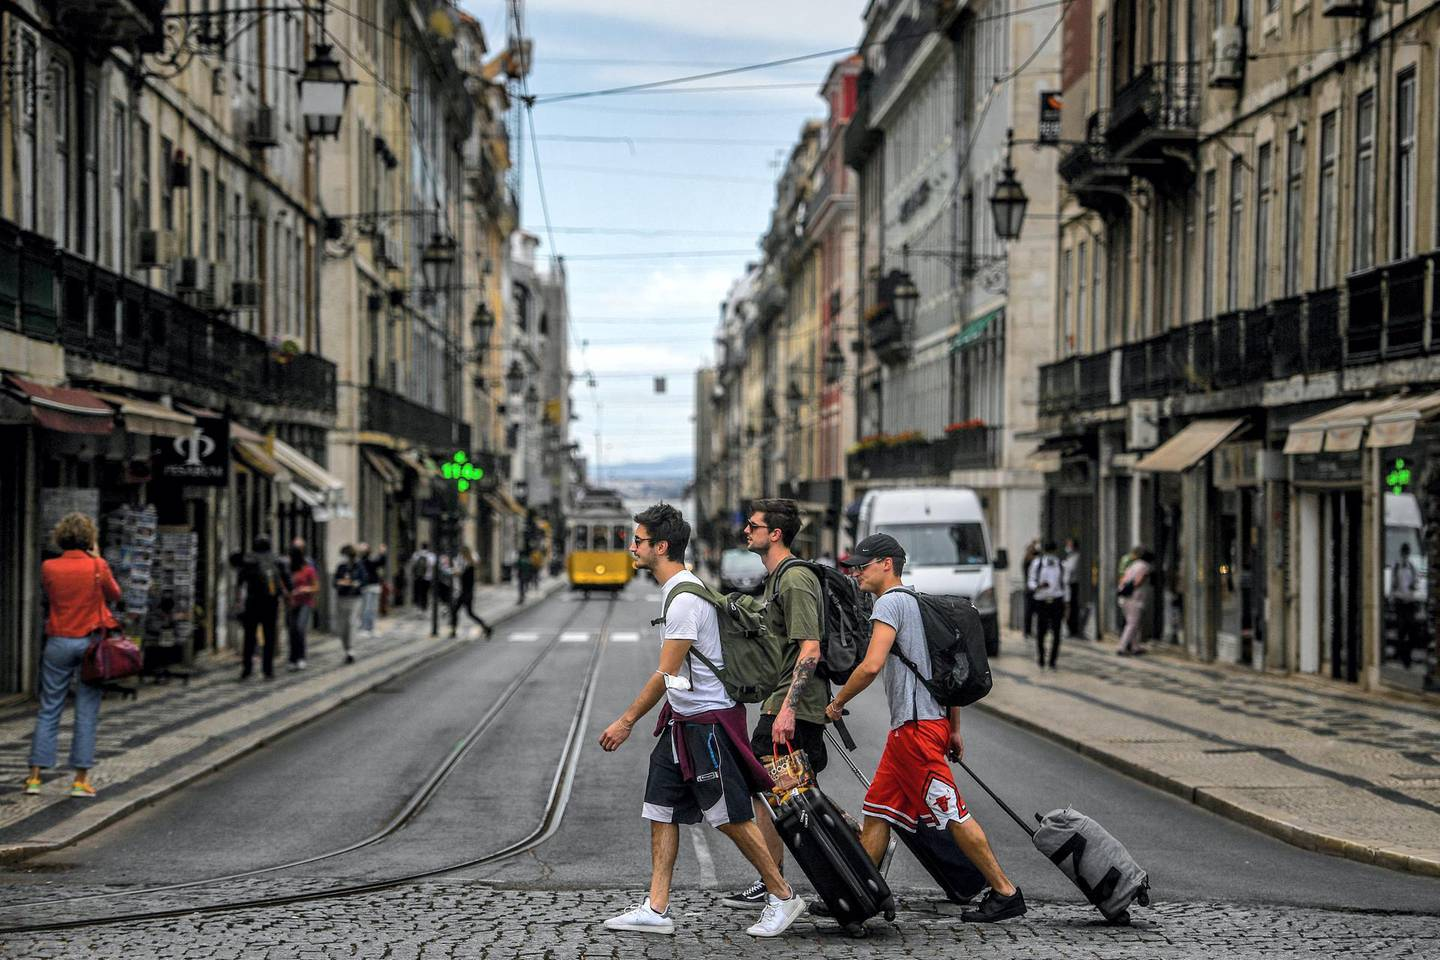 Tourist cross a street in downtown Lisbon on June 18, 2021. - The Portuguese government will limit travel to and from the greater Lisbon area during the weekend following an increase in coronavirus cases in the region. (Photo by PATRICIA DE MELO MOREIRA / AFP)